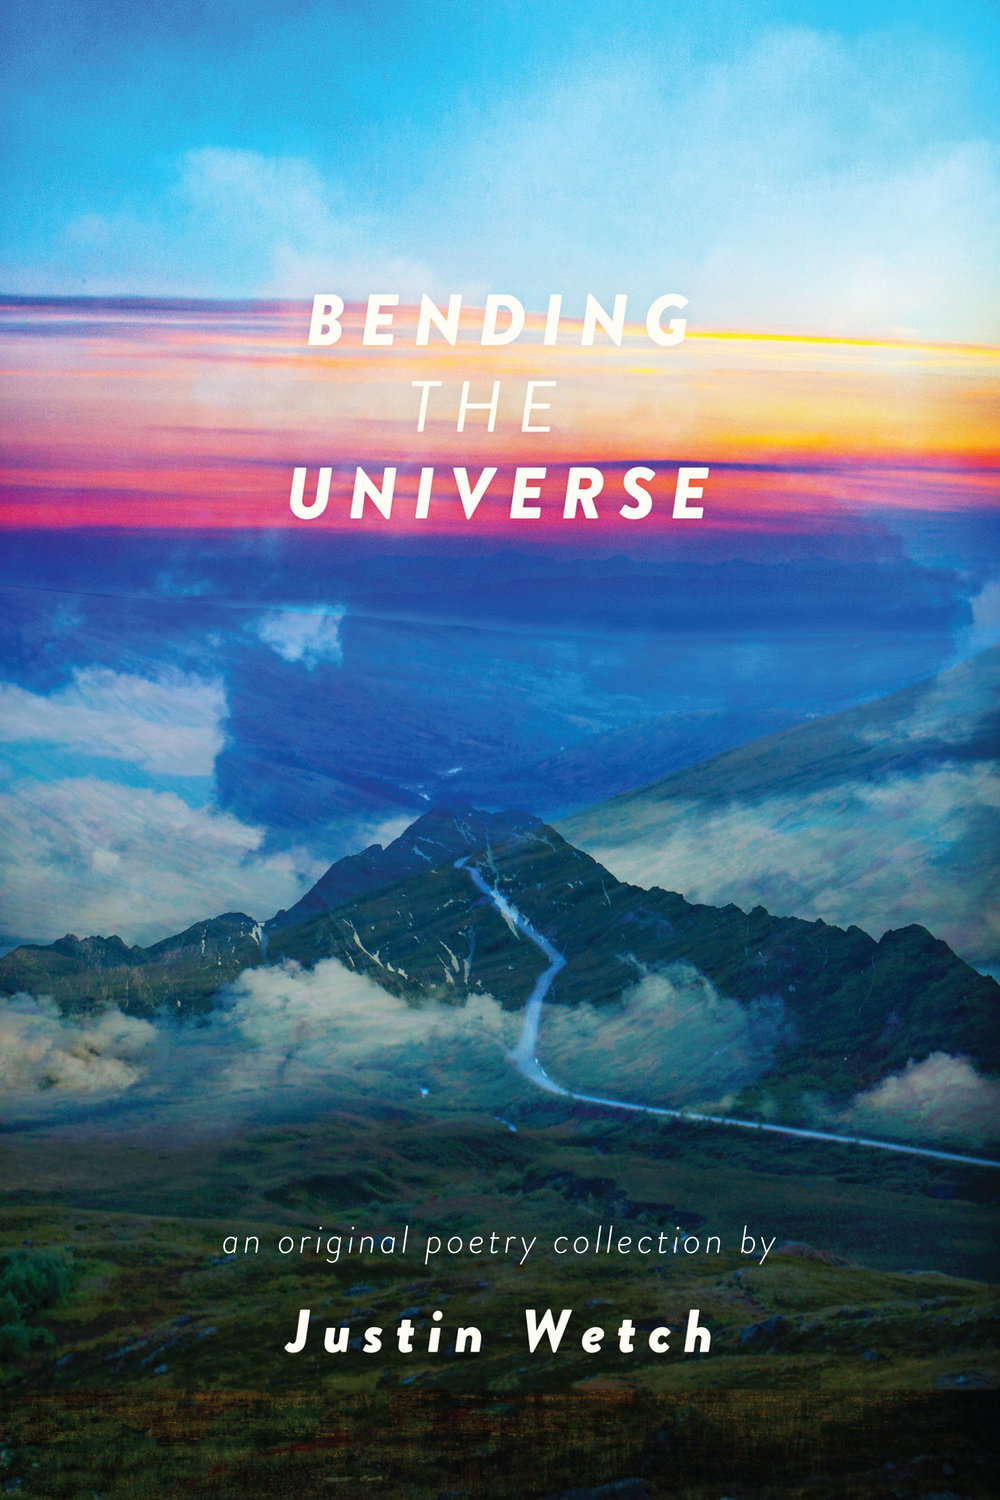 Cover - Bending the Universe.jpg